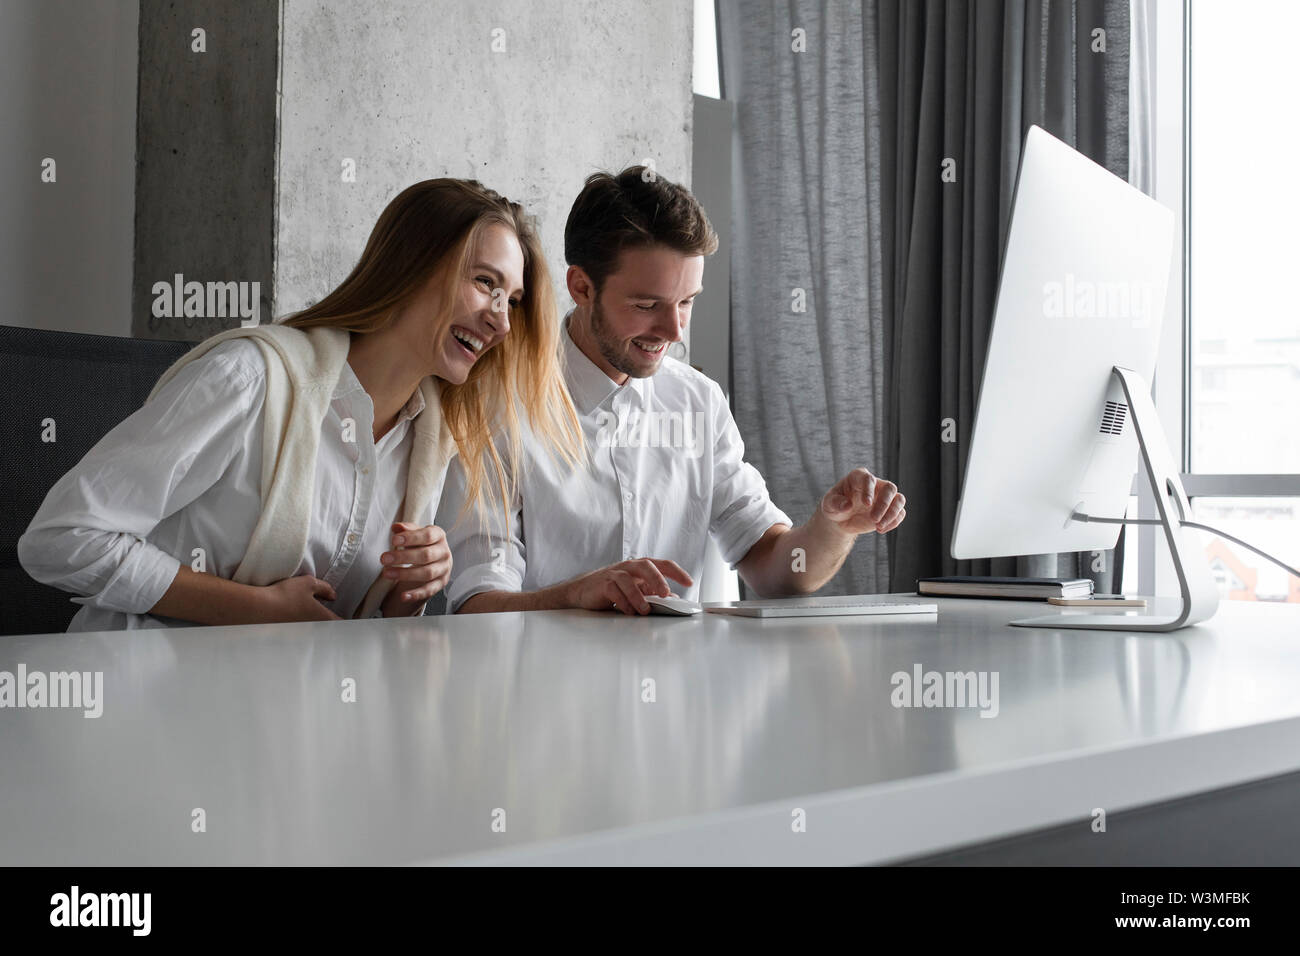 Colleagues laughing at desk - Stock Image